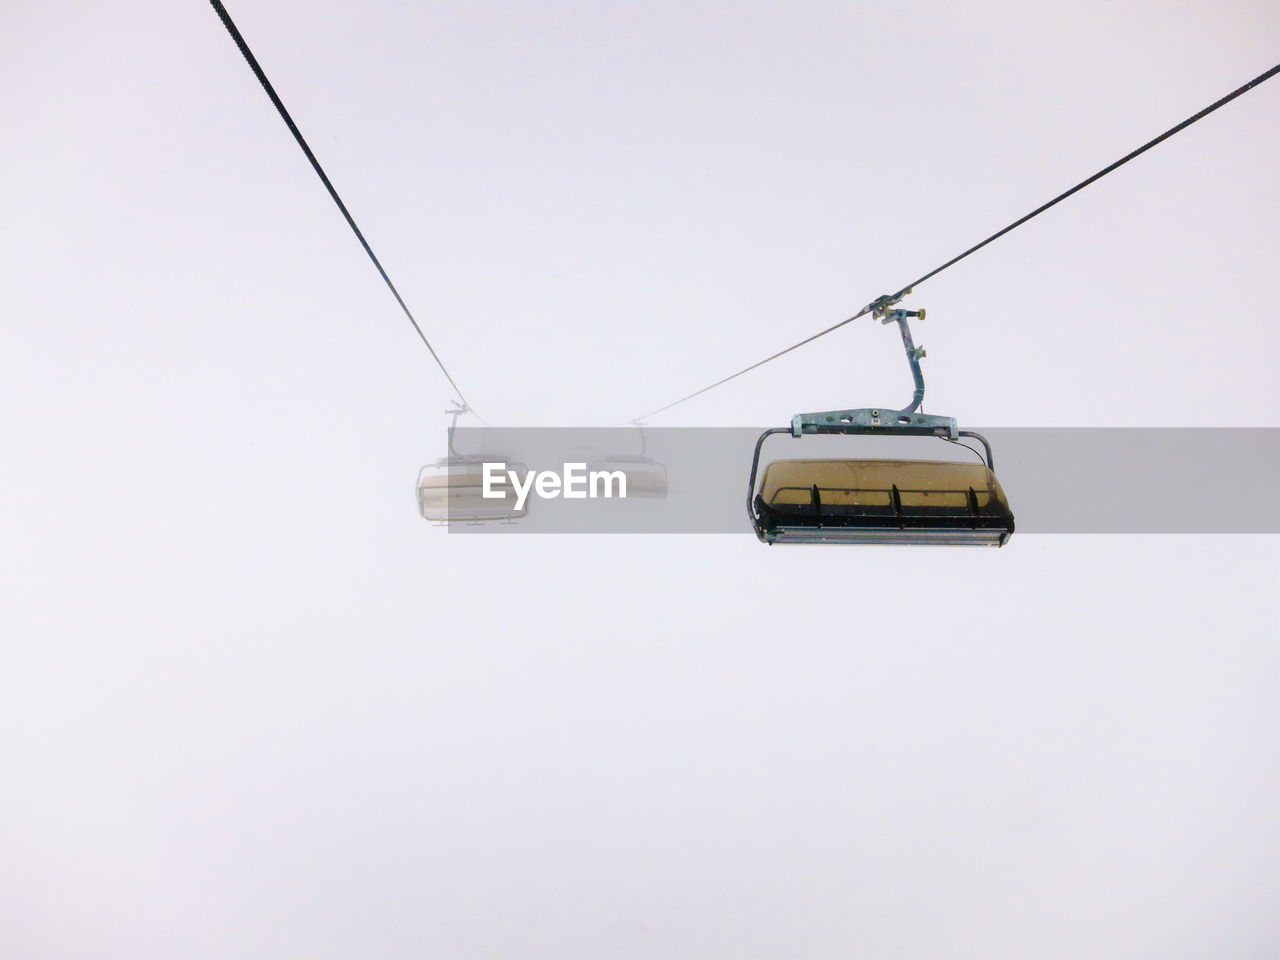 Low Angle View Ski Lifts In Foggy Weather Against Clear Sky